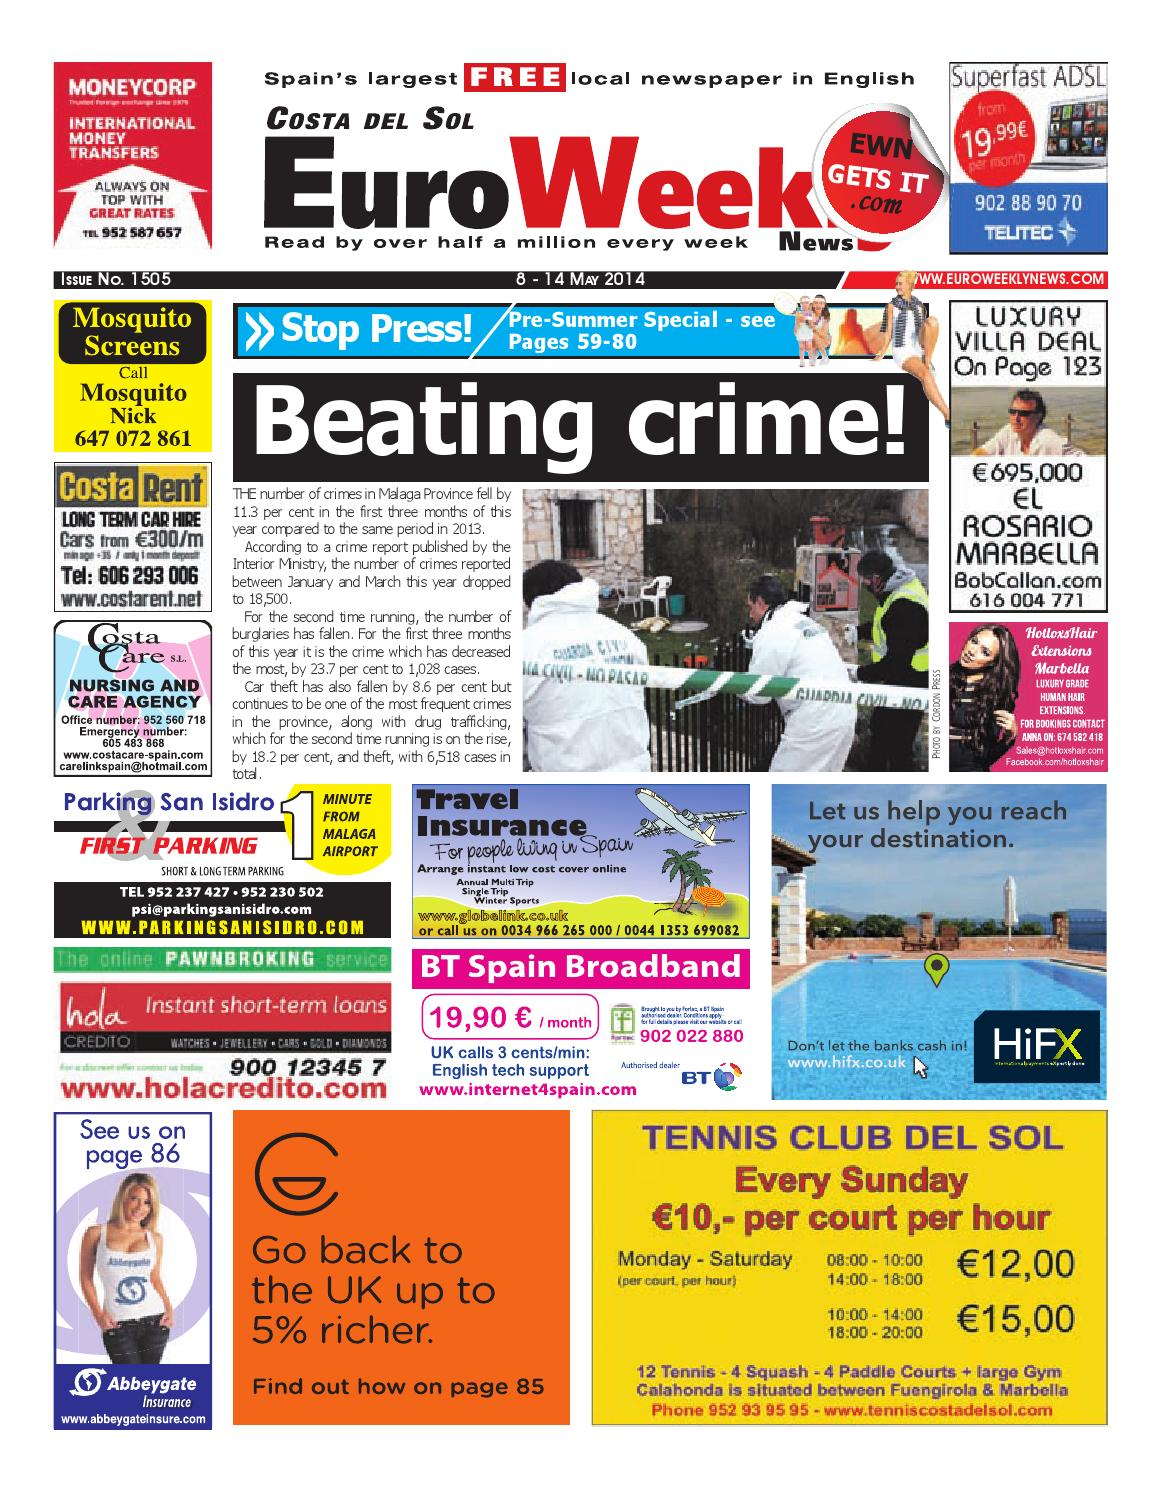 Redondela Pintor Euro Weekly News Costa Del Sol 8 14 May 2014 Issue 1505